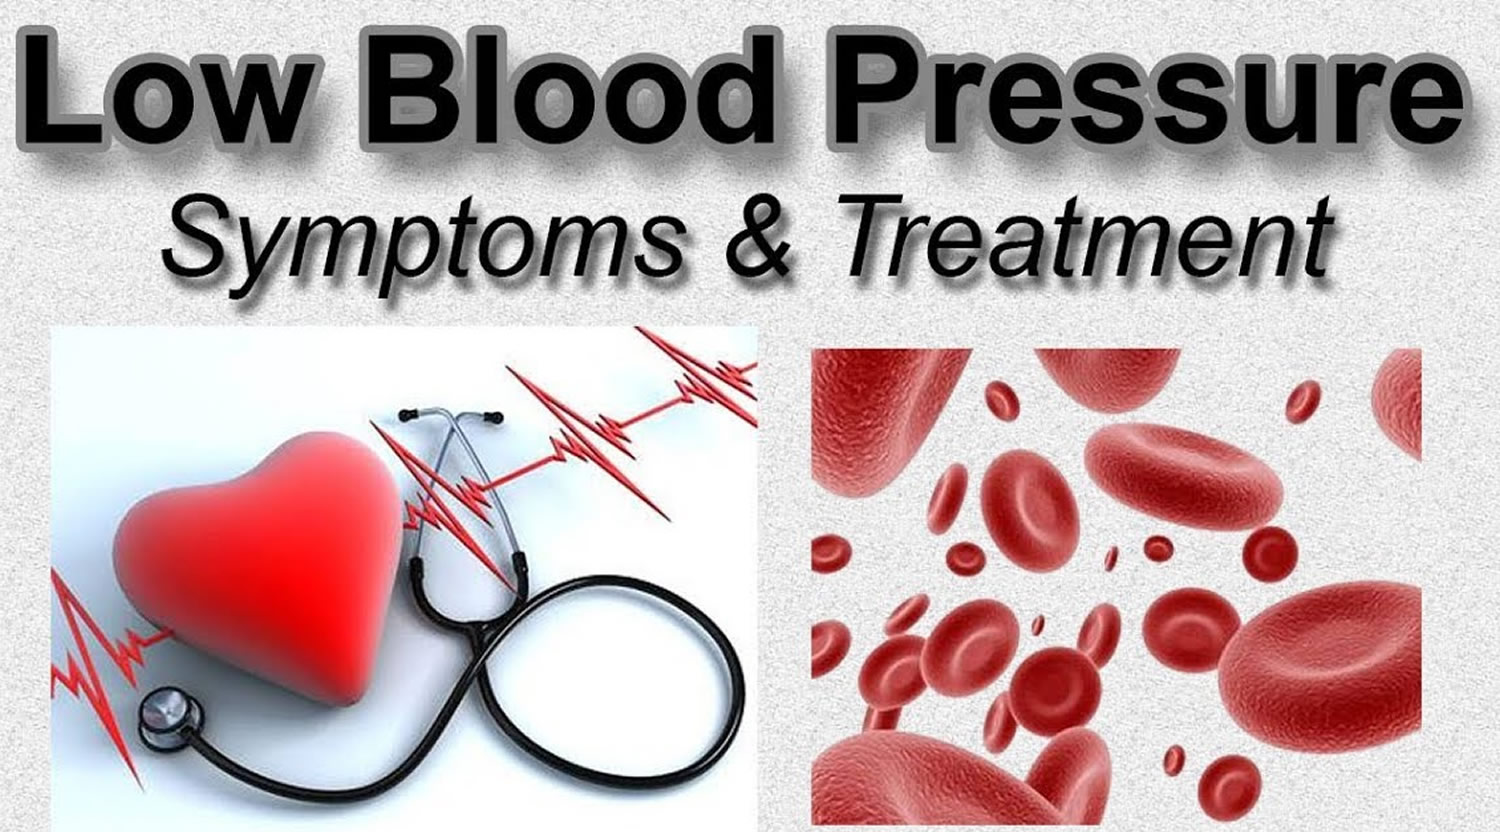 Low Blood Pressure Hypotension Causes Signs Treatment